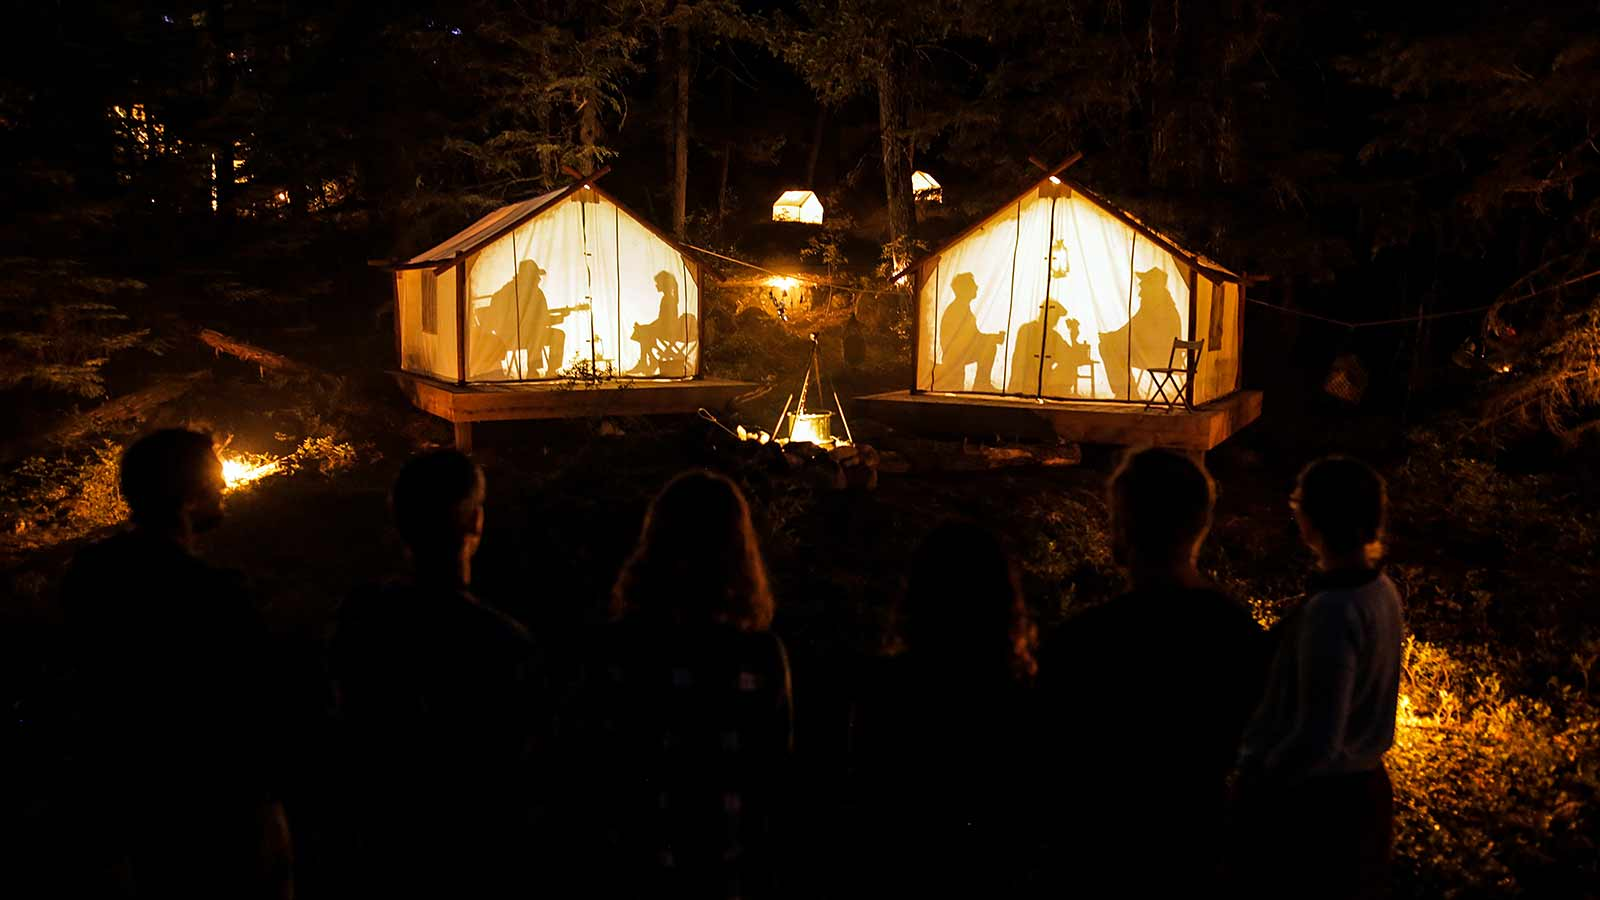 Tents in the dark with lights and persons sitting inside at Vallea Lumina Whistler Canada.